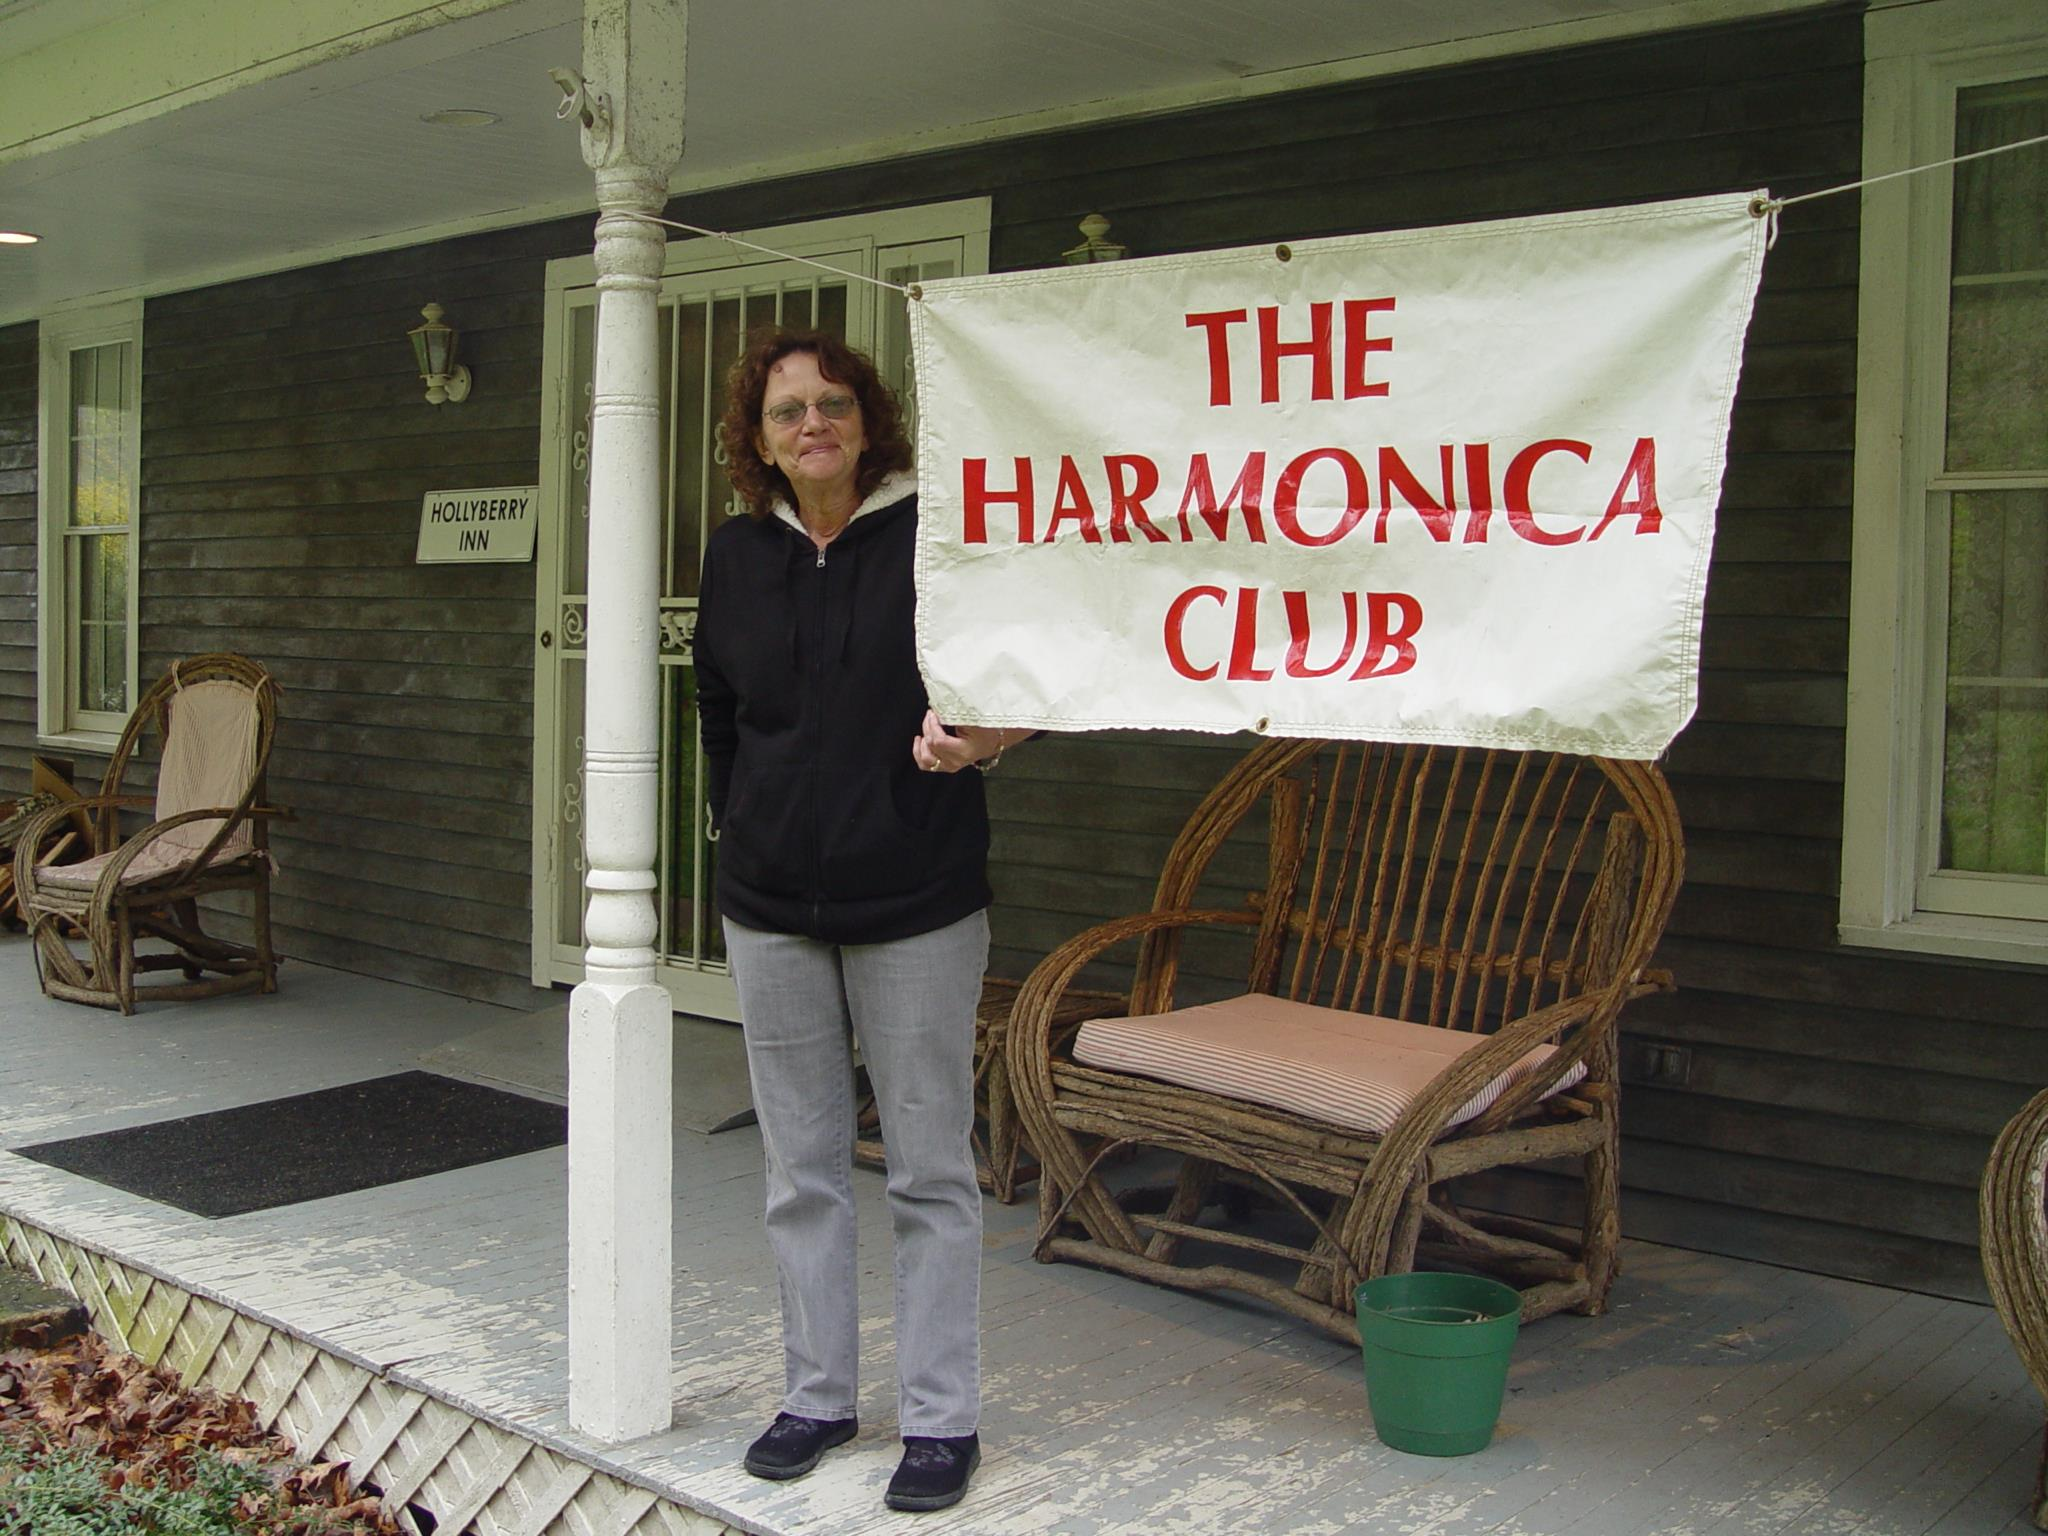 when you see the HAMONICA CLUB sign, you know your'e there